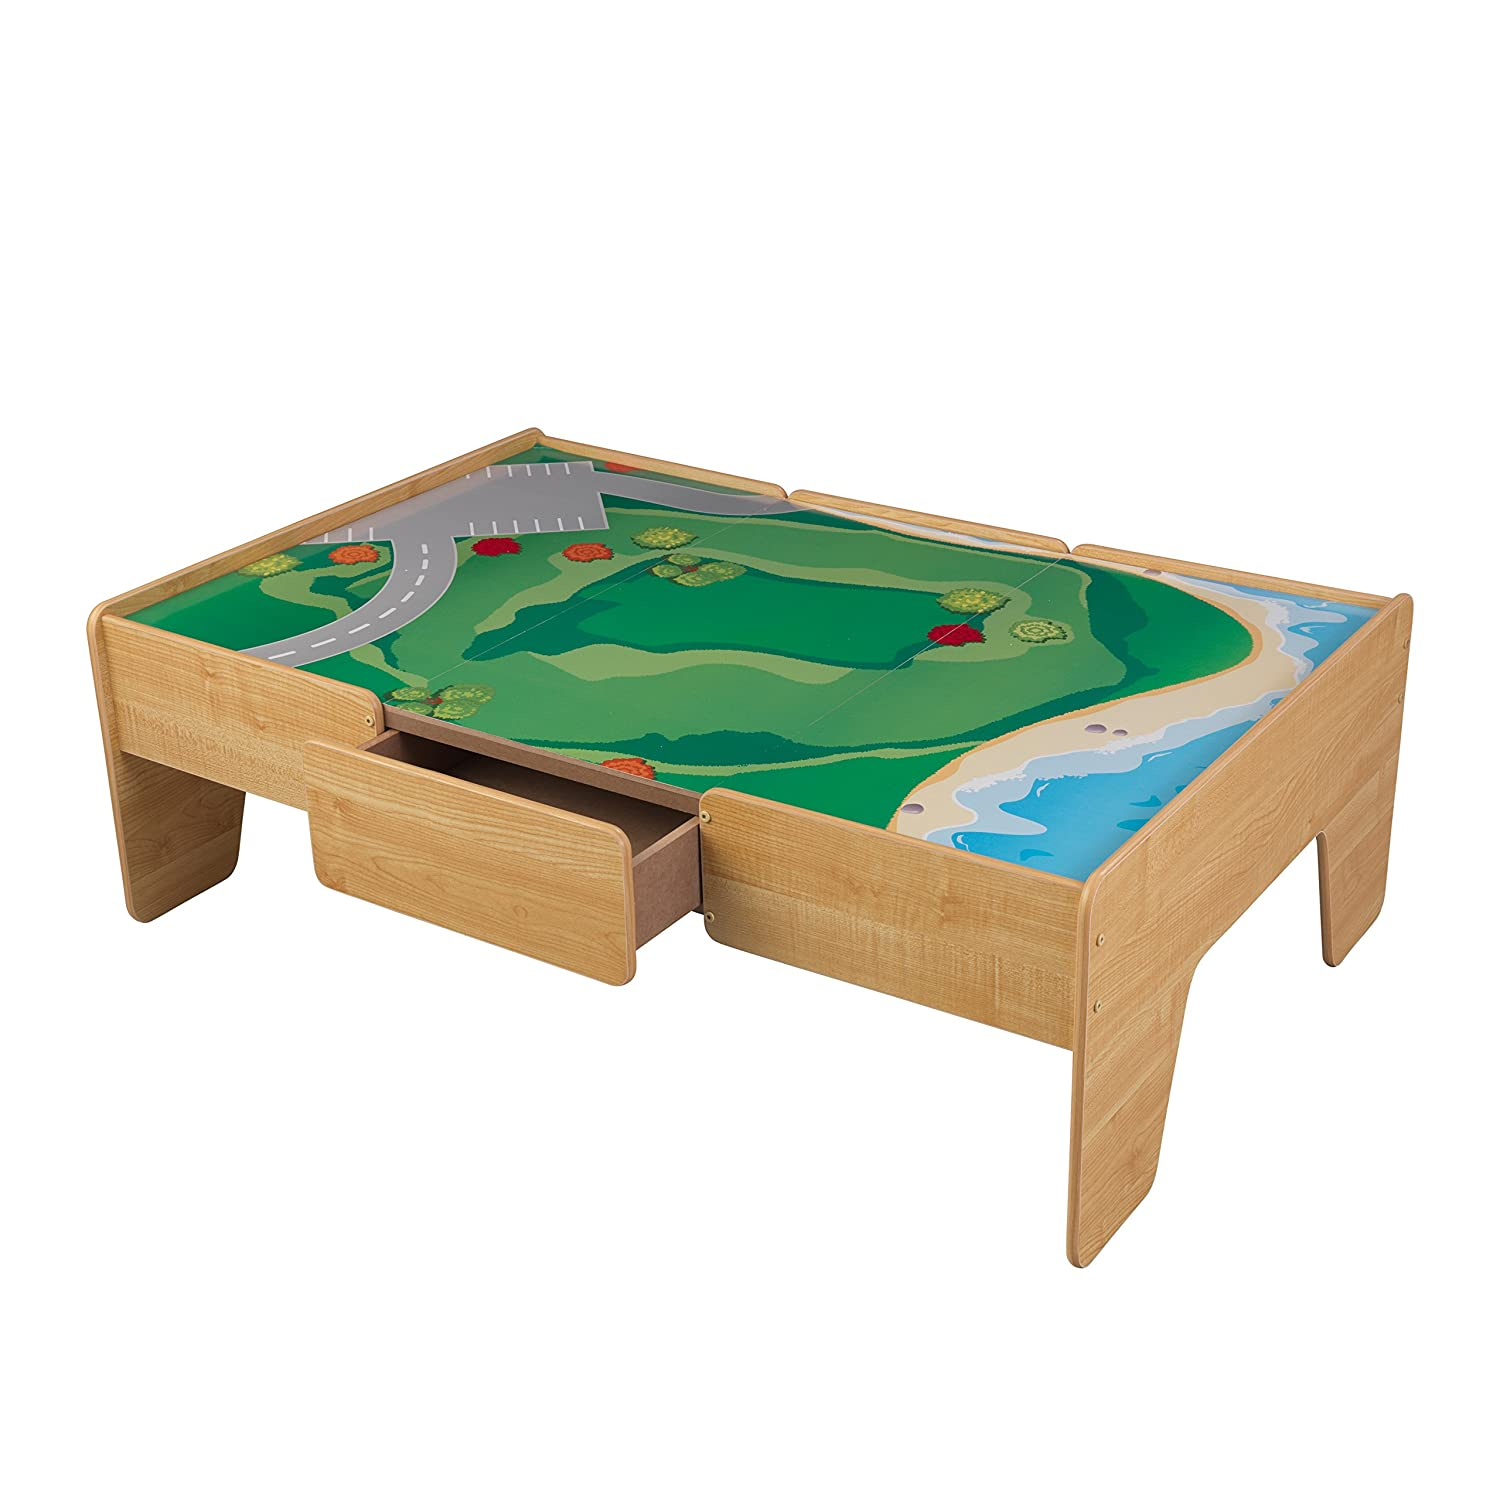 KidKraft Wooden Play Table Train Table 18006